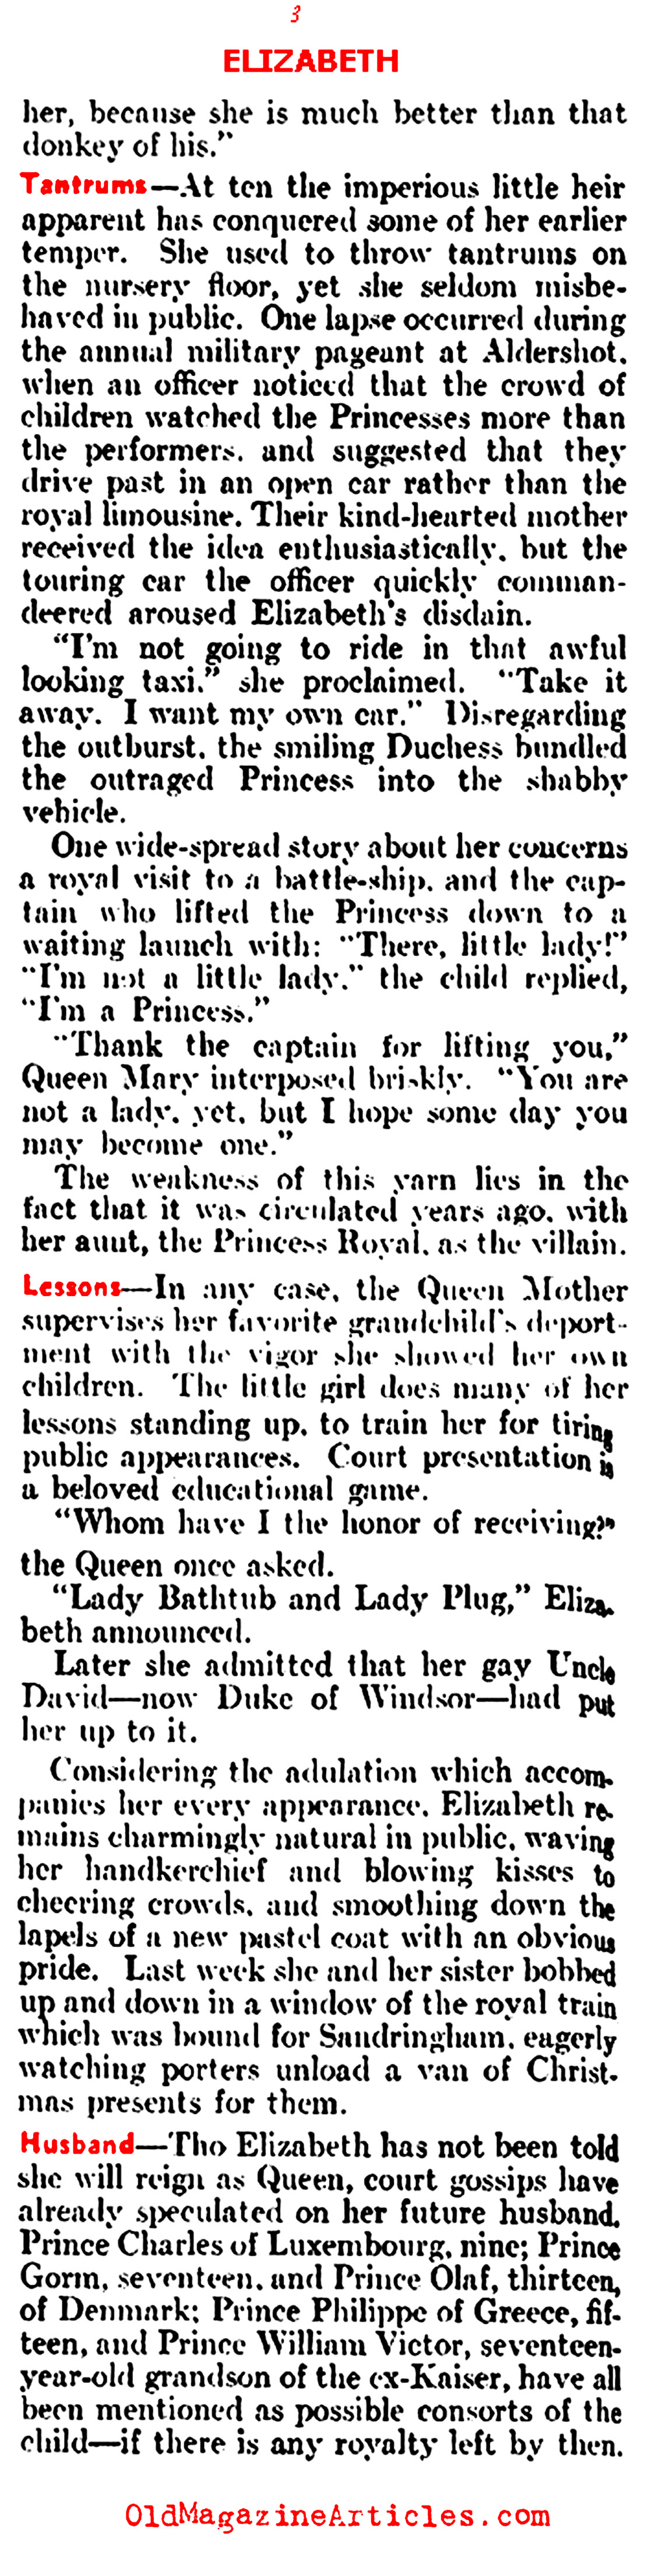 Anticipating Elizabeth II (Literary Digest, 1937)